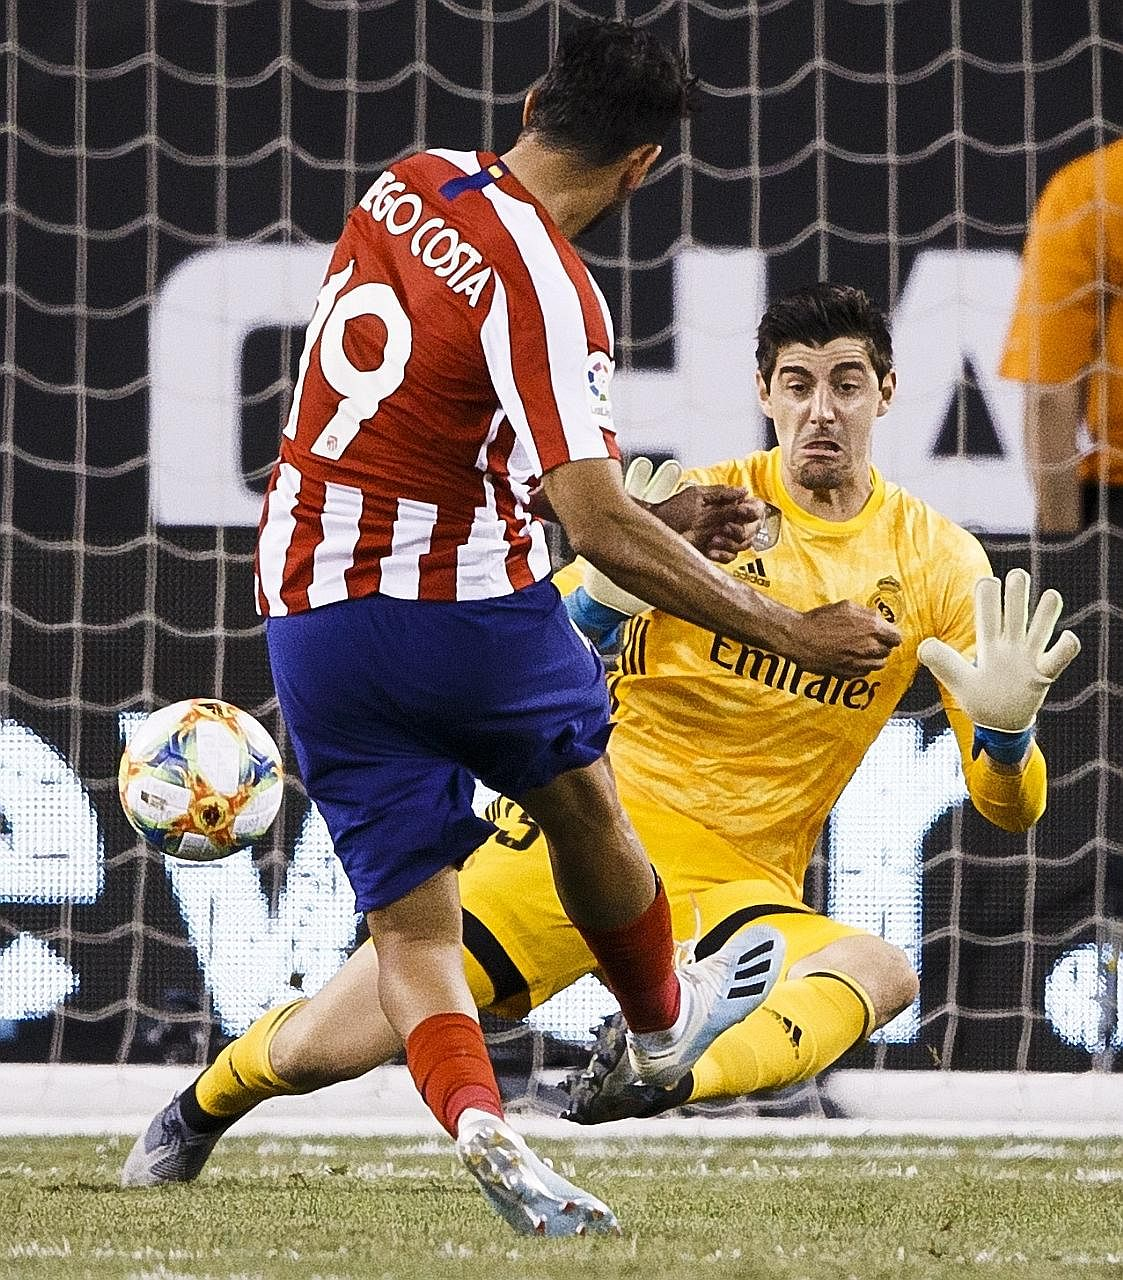 Atletico Madrid striker Diego Costa scoring past Real Madrid goalkeeper Thibaut Courtois, his former teammate at Chelsea, during the International Champions Cup game in New Jersey on Friday. Atletico won 7-3.